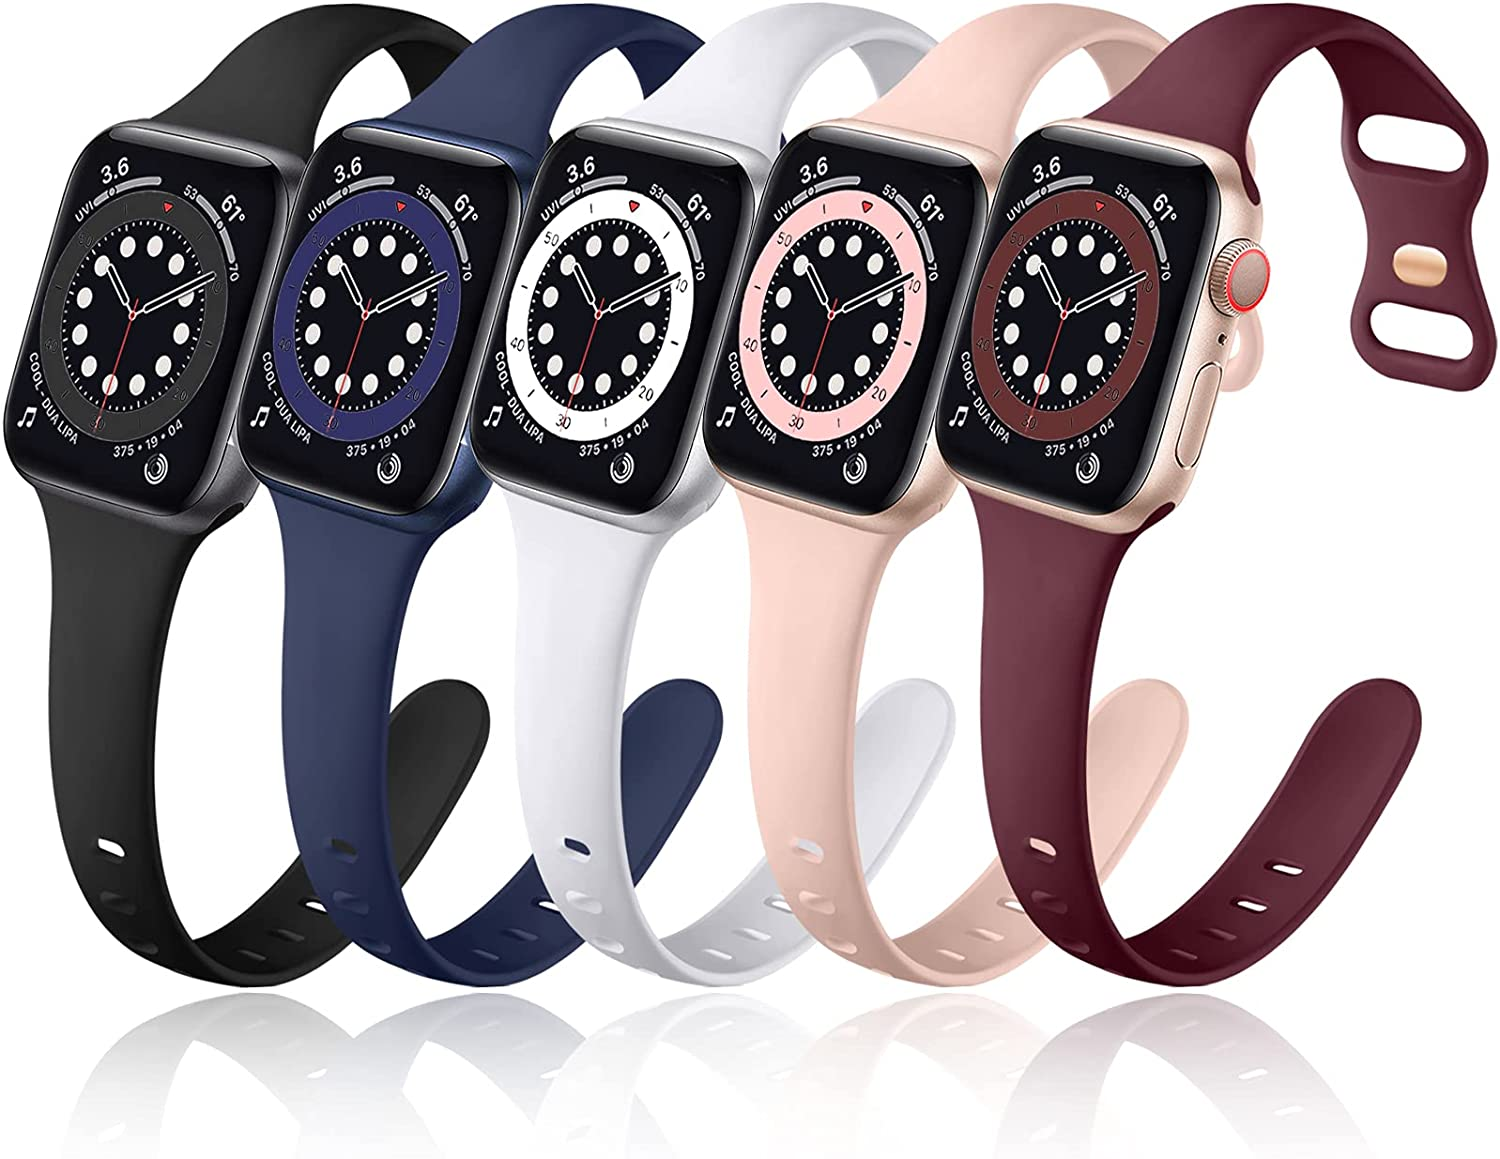 Muranne 5 Pack Bands Compatible with Apple Watch 40mm 38mm 42mm 44mm iWatch SE & Series 6 5 4 3 2 1 for Women Men, Cute Slim Narrow Durable Water Resistant Soft Silicone Sport Replacement Wrist Strap